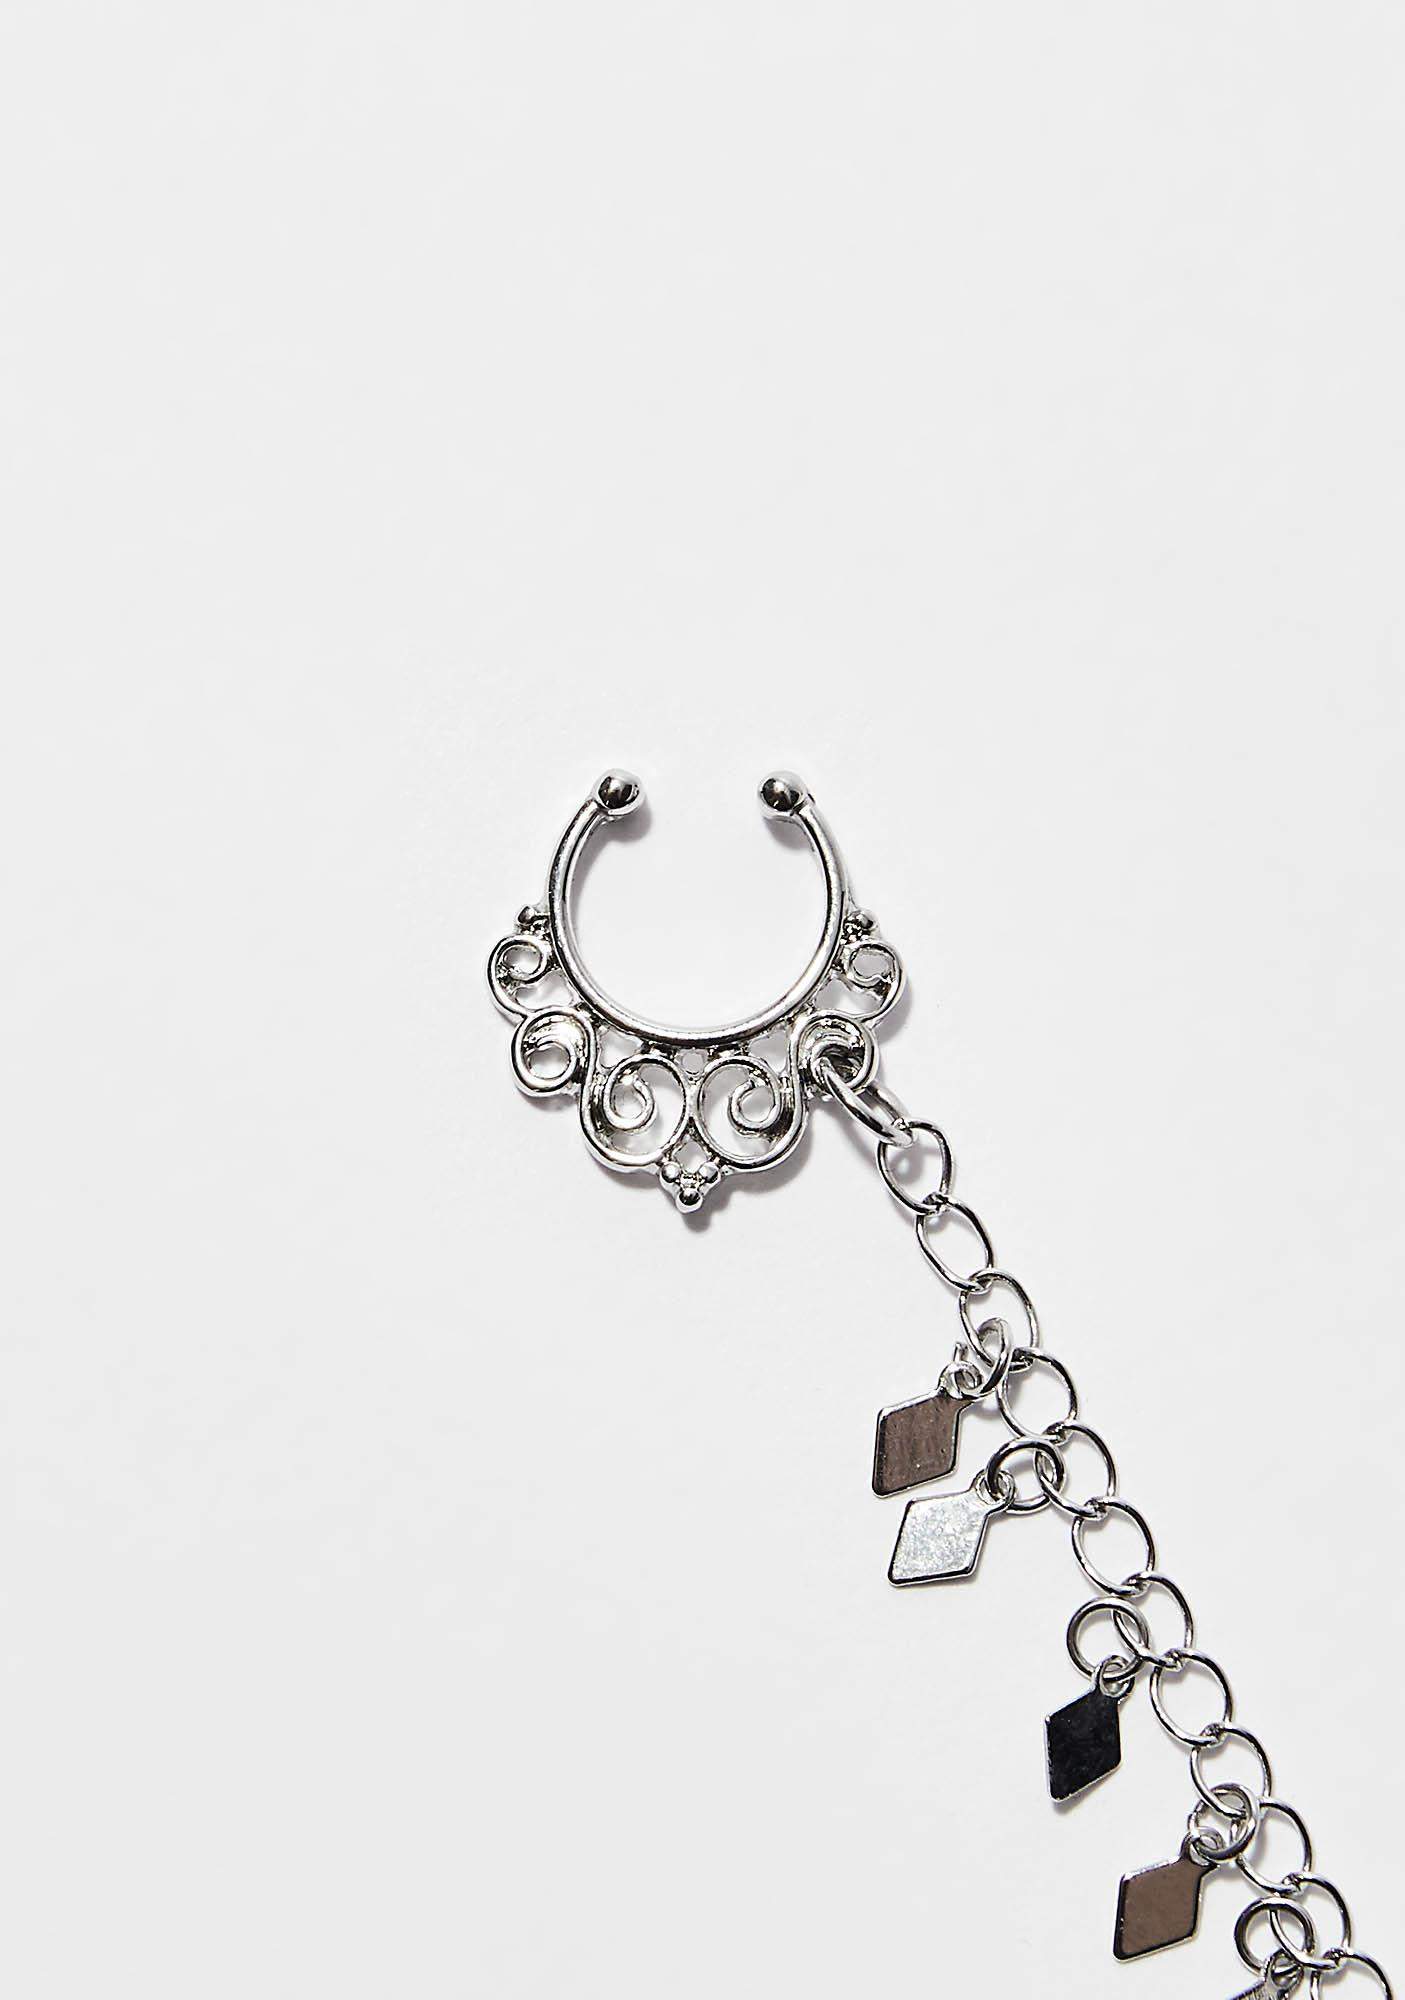 Chained Together Nose Earring Chain